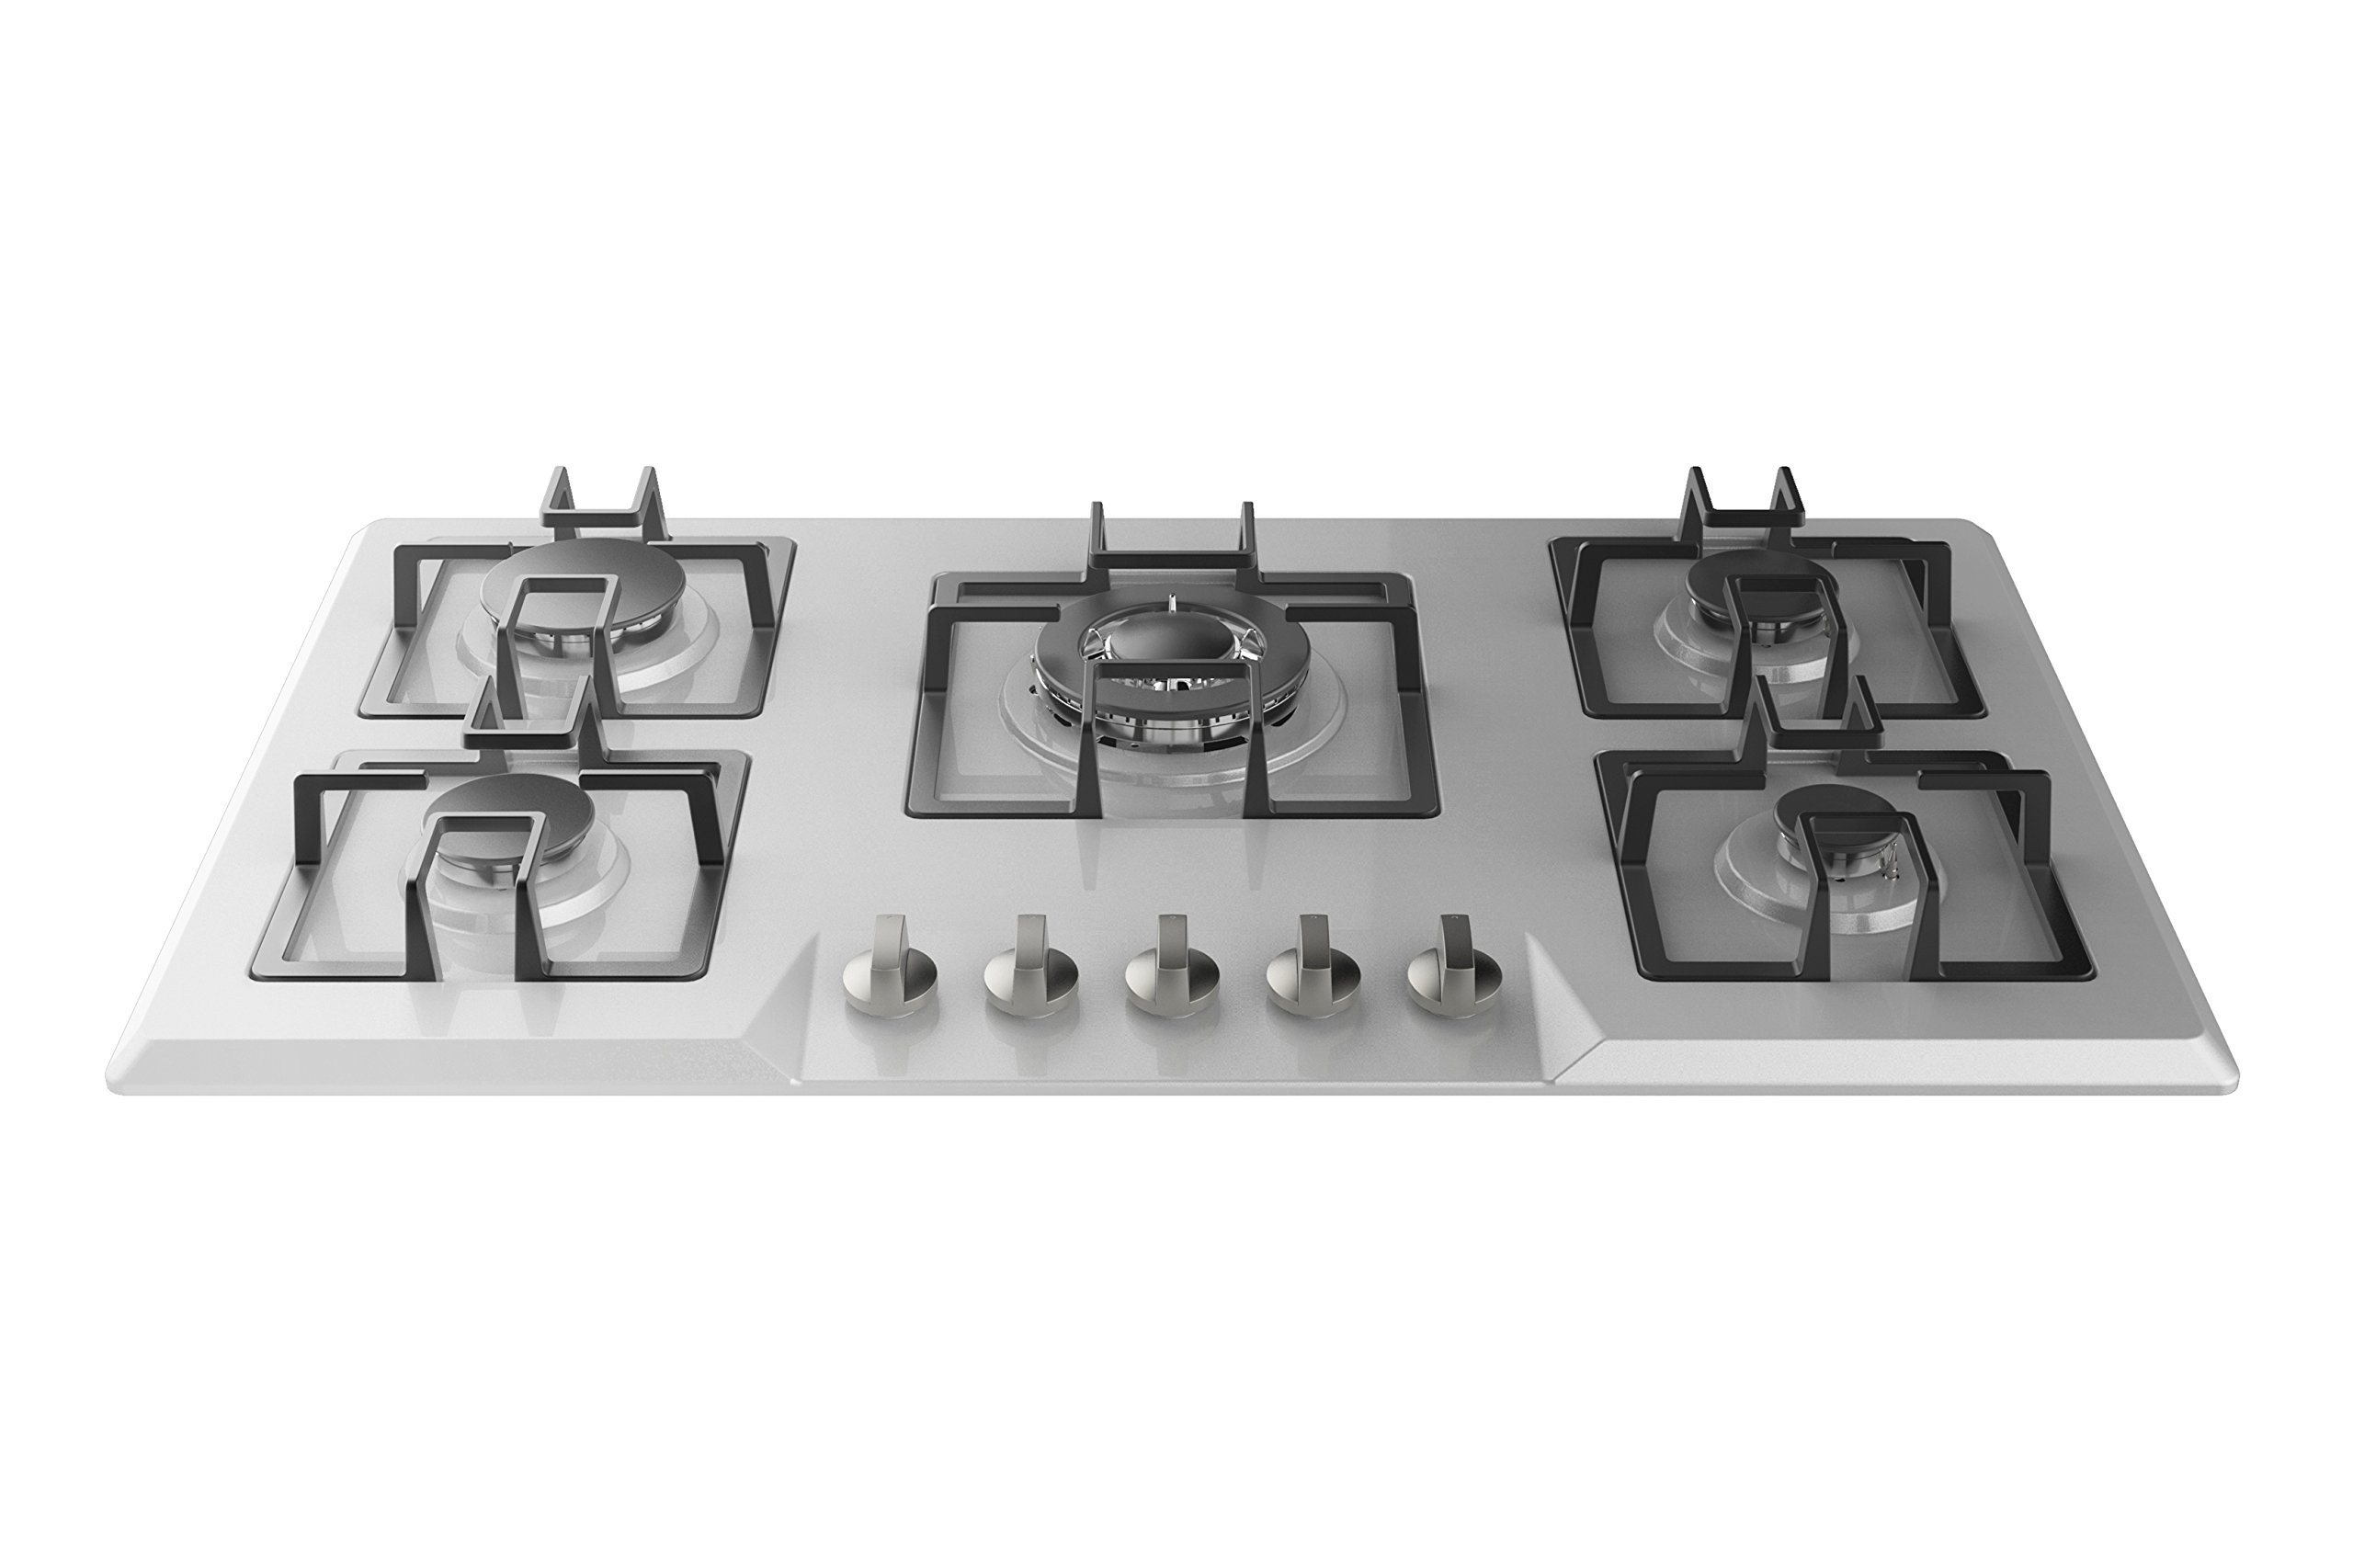 Empava 34'' Stainless Steel Built-in 5 Italy Sabaf Burners Stove Top Gas Cooktop EMPV-34GC5B90A by Empava